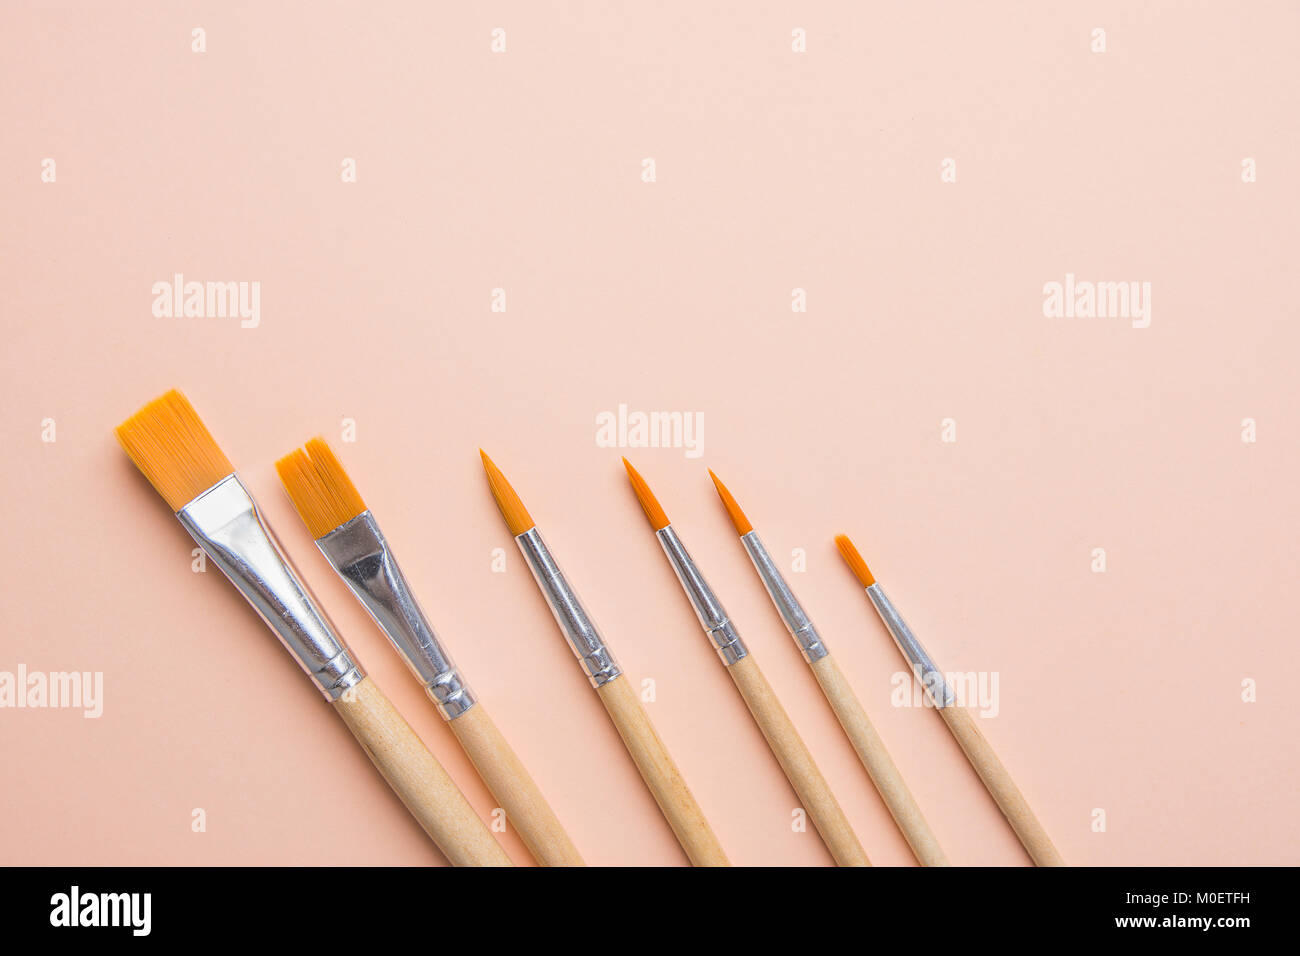 Bunch Of Various Kinds Of Paint Brushes On Light Pink Peachy Stock